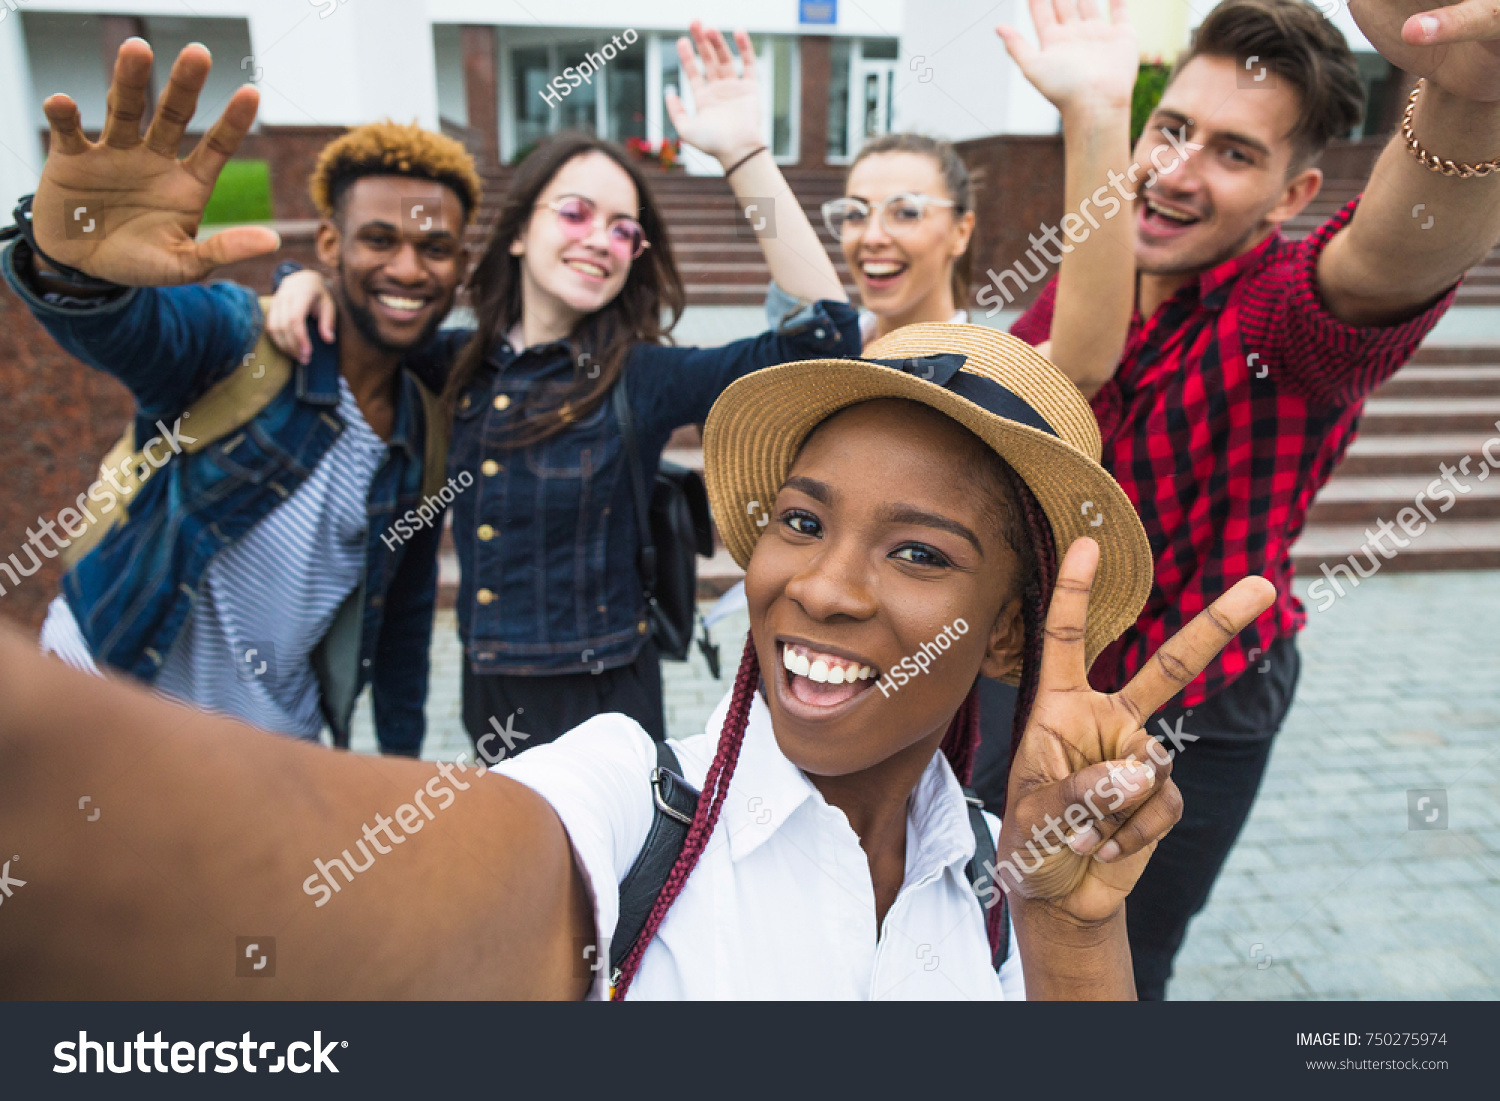 stock-photo-students-with-beaming-smiles-are-posing-for-selfie-shot-750275974.jpg